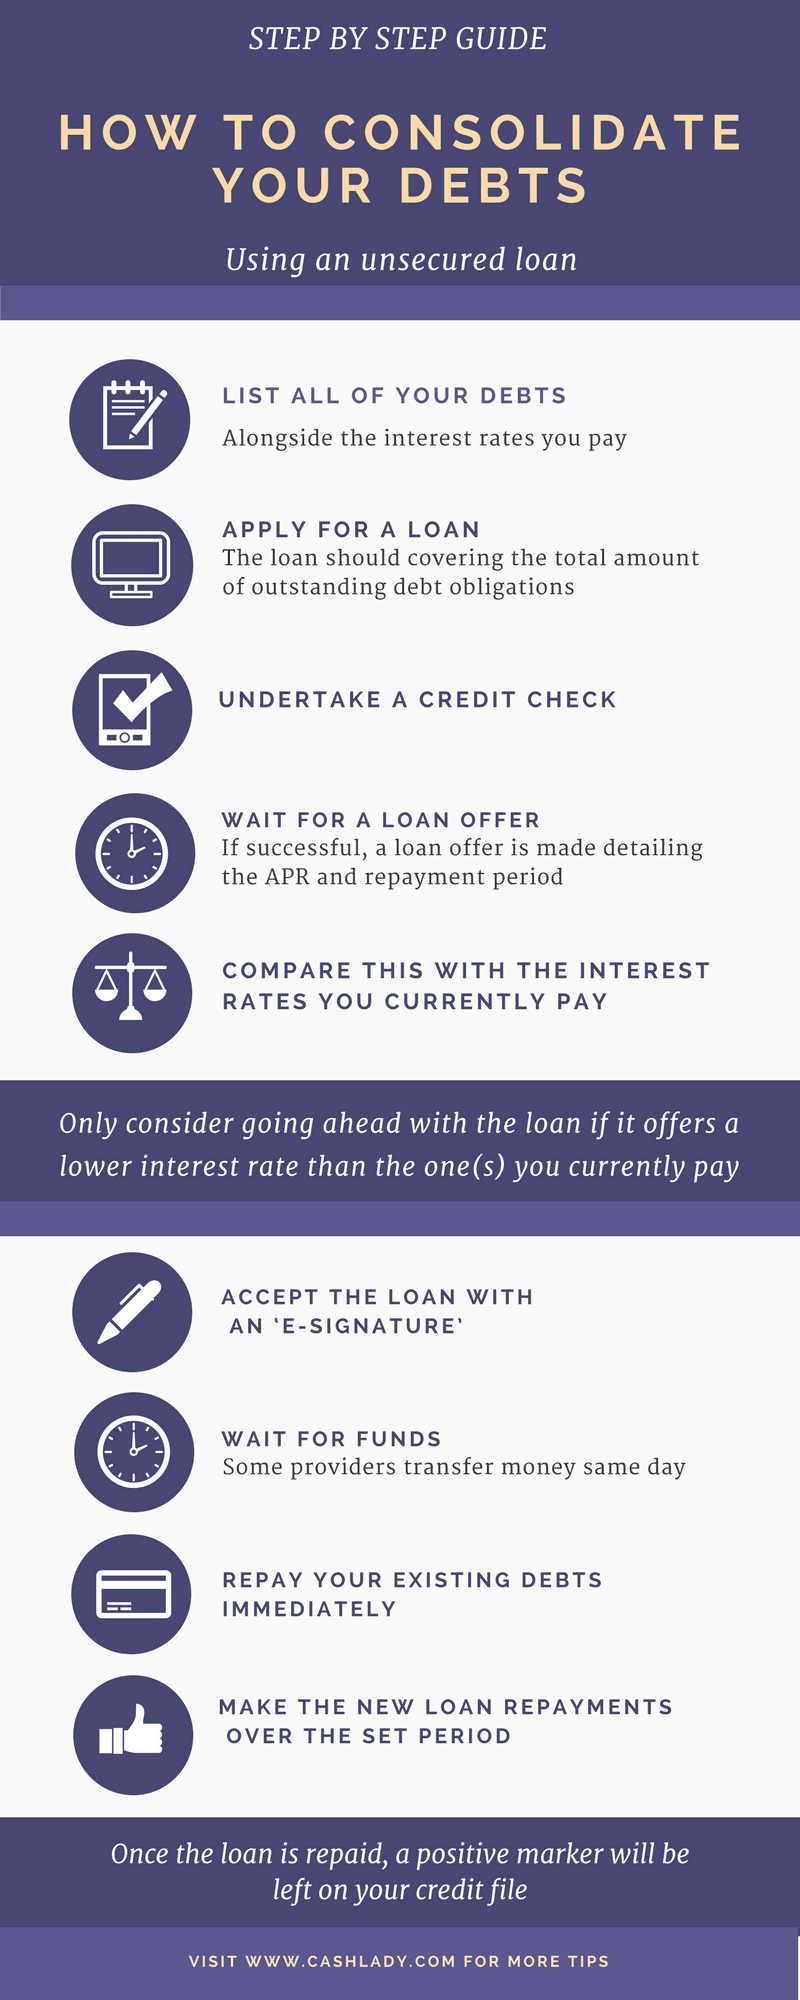 the infographic explains how to rebuid a credit history using debt consolidation loans